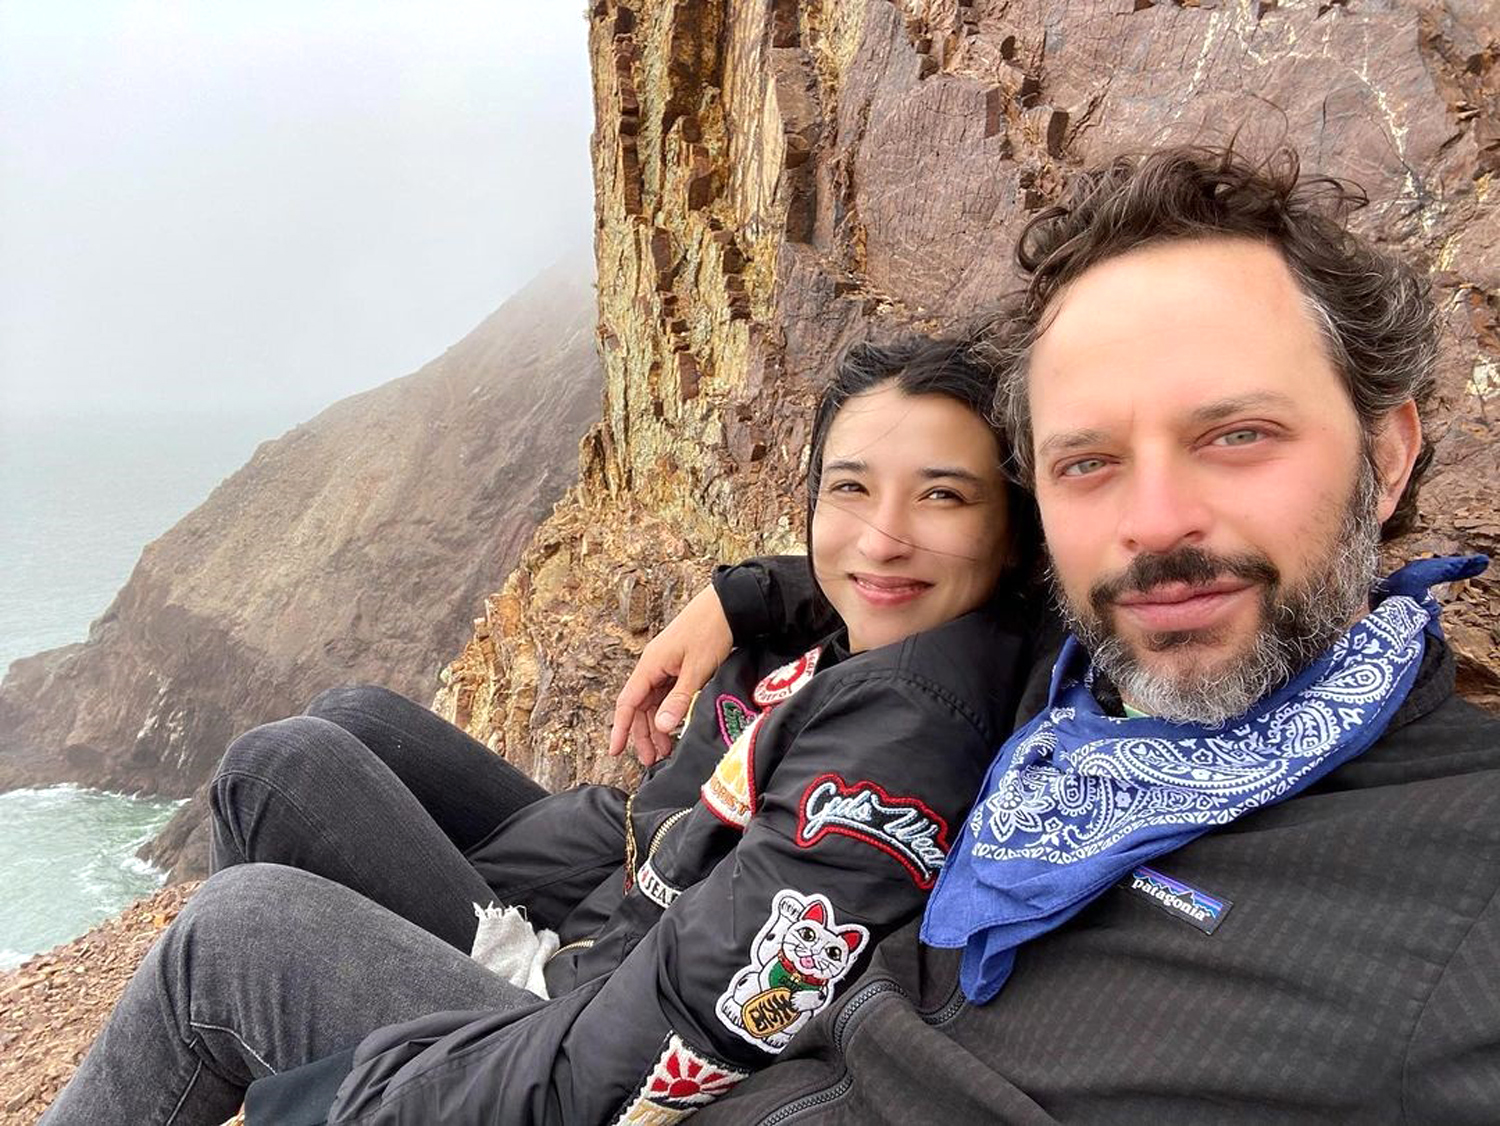 """The Big Mouthco-creator/star and girlfriend Lily Kwong tied the knot earlier this month, the couple revealed onInstagram on Nov. 26.                             According to Kwong'spost, the pair wed on Nov. 19 in what appeared to be a romantic cliffside ceremony that overlooked the water.                             Both Kroll and Kwong, a landscape architect, posted a photo of a polaroid taken from their special day. In the sweet photo, the couple is seen holding hands and looking into each other's eyes while in their wedding attire.                             """"So very thankful for@lily_kwong,"""" Kroll captioned thesweet snap.                             Kwong posted the same photo to her Instagram, writing in her caption, """"11*19*20 + forever @nickkroll ♥️.""""                             Last month, Kwong announced on Instagram that she and Kroll are expecting their first child together."""